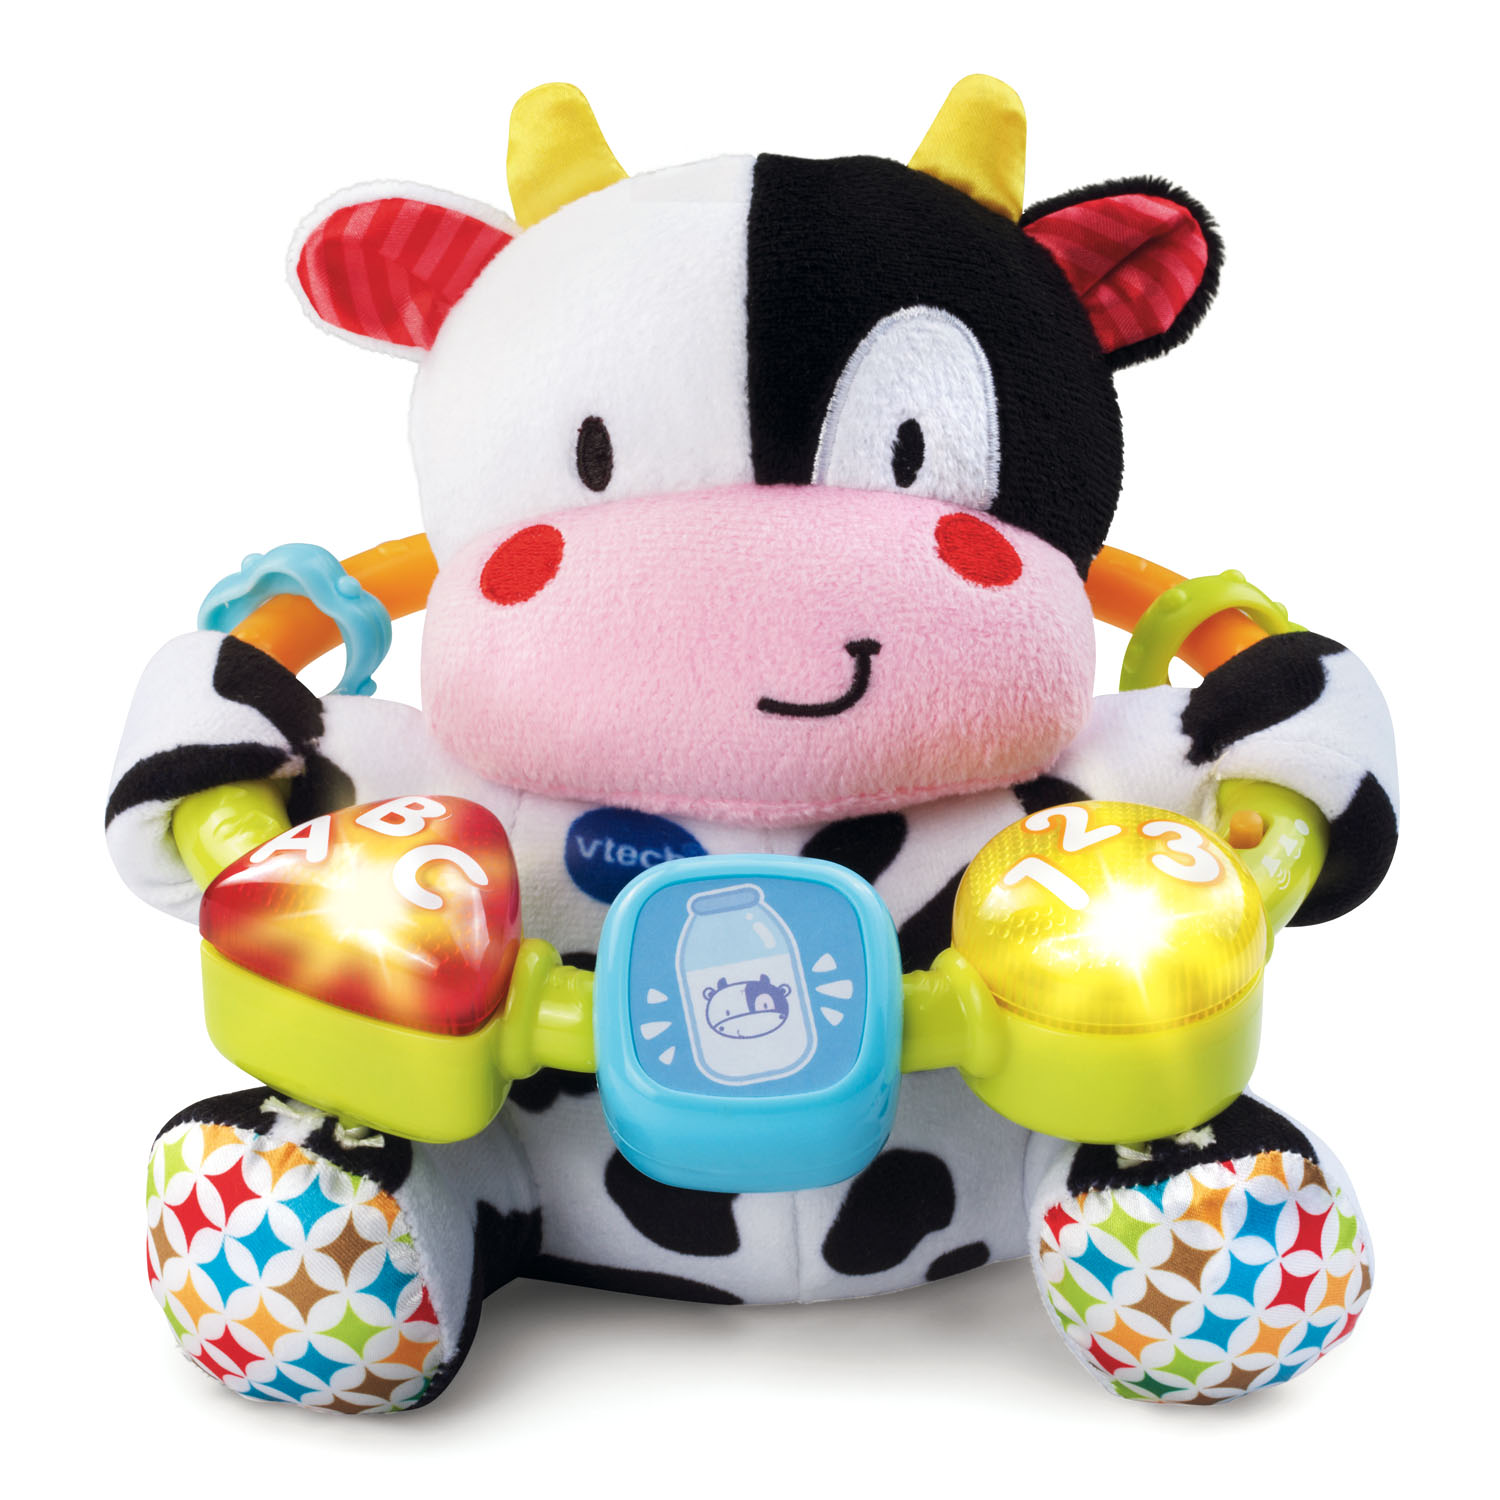 VTech® Lil' Critters Moosical Beads™